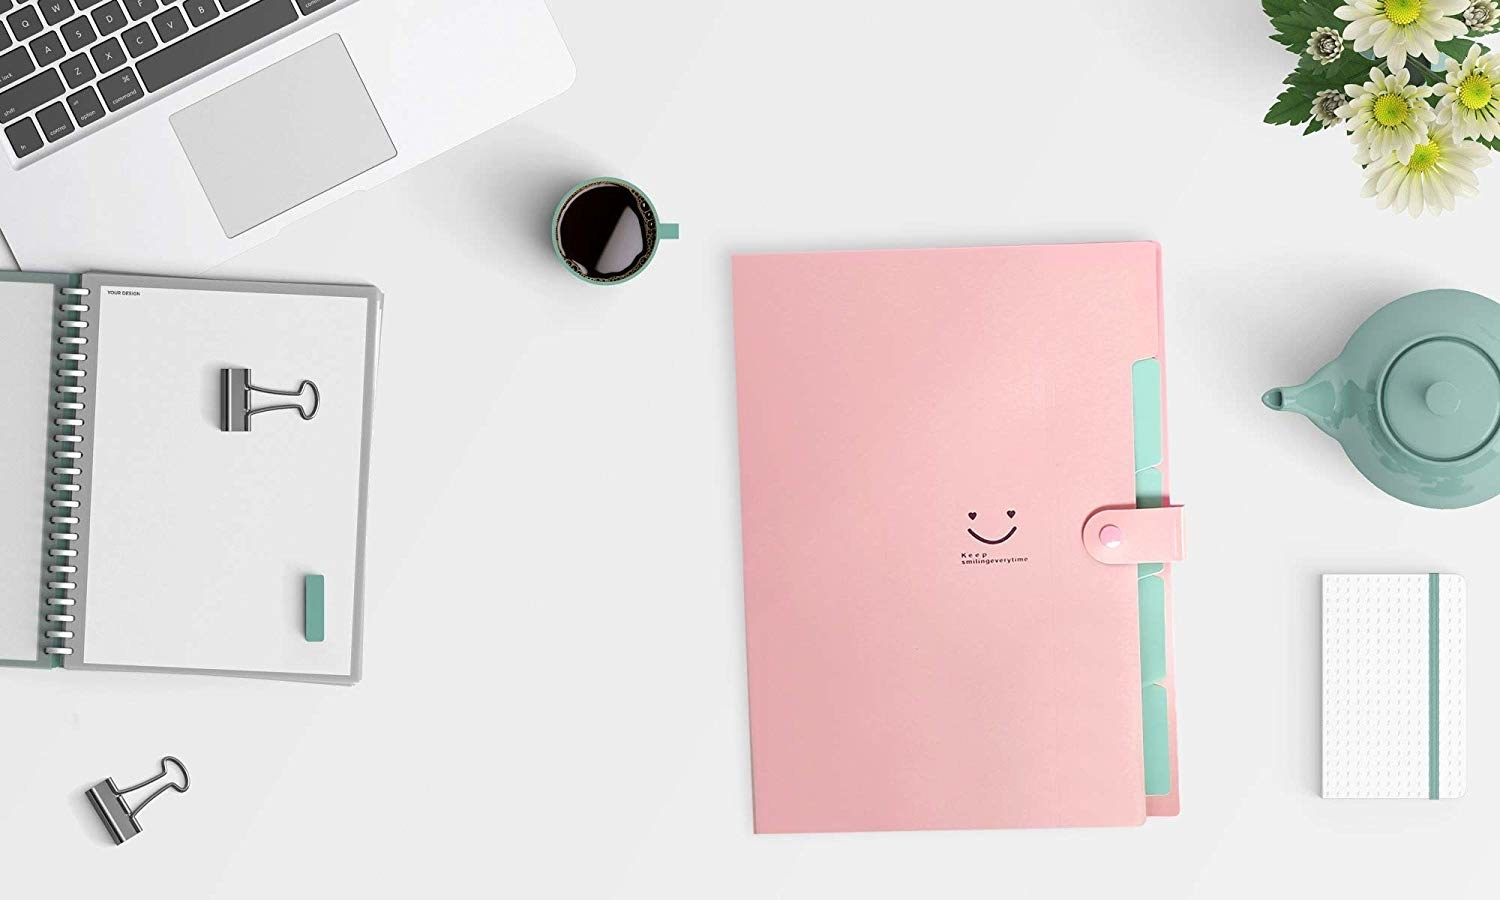 A plastic file folder with a smiley face on it lying on a desk near a laptop and notebook